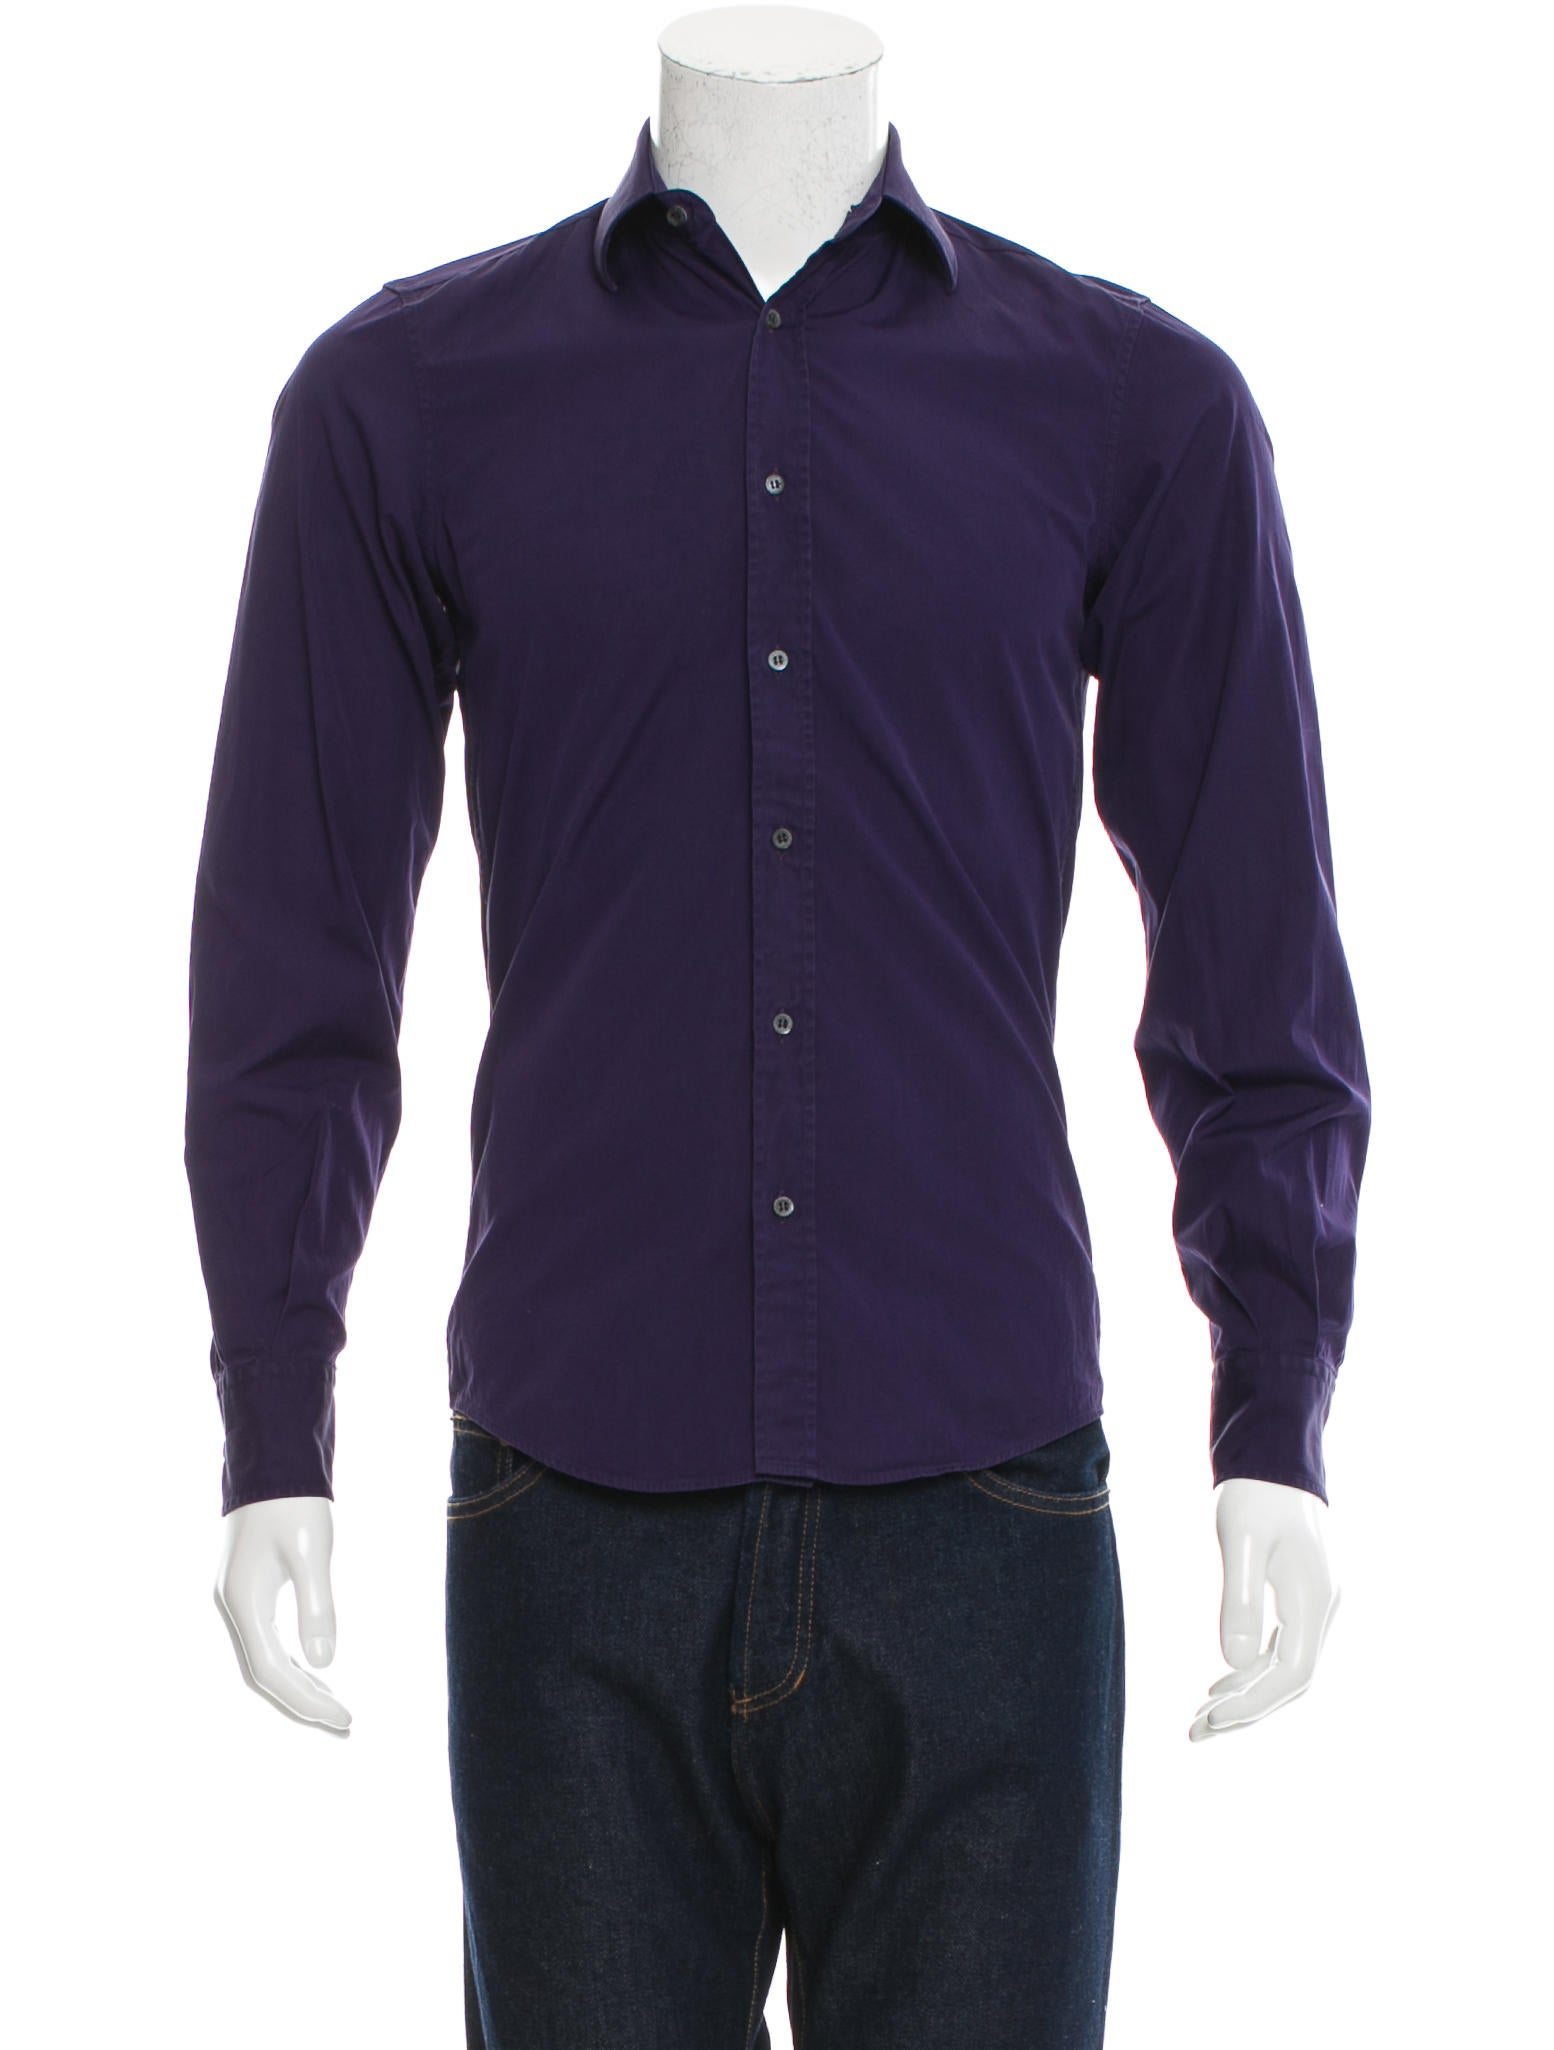 Gucci fitted button up shirt clothing guc137822 the for Fitted button up shirts mens